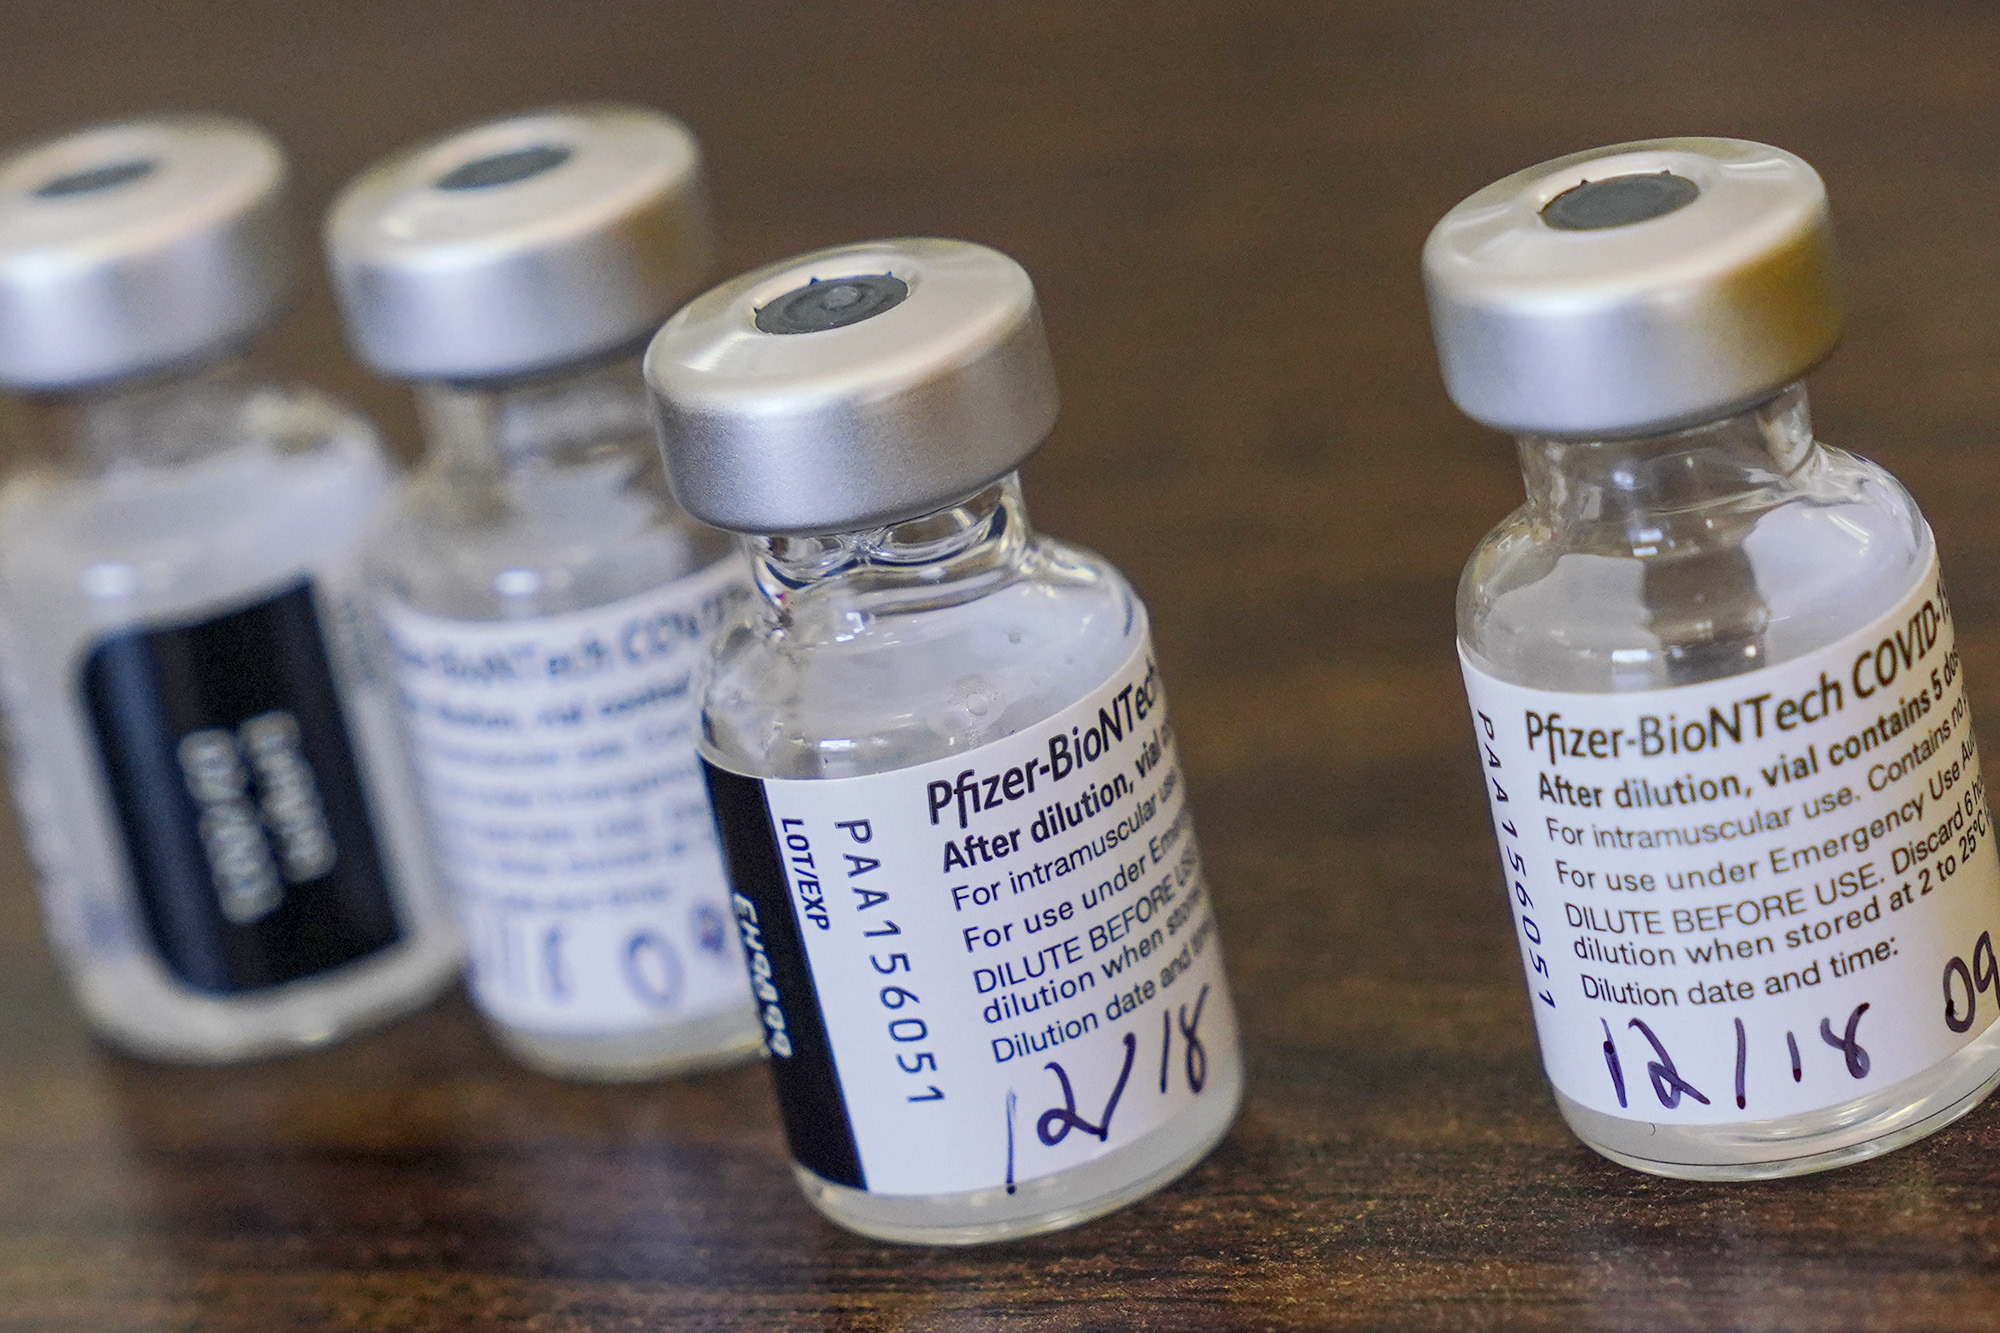 FDA probes allergic reactions after Pfizer COVID-19 shot